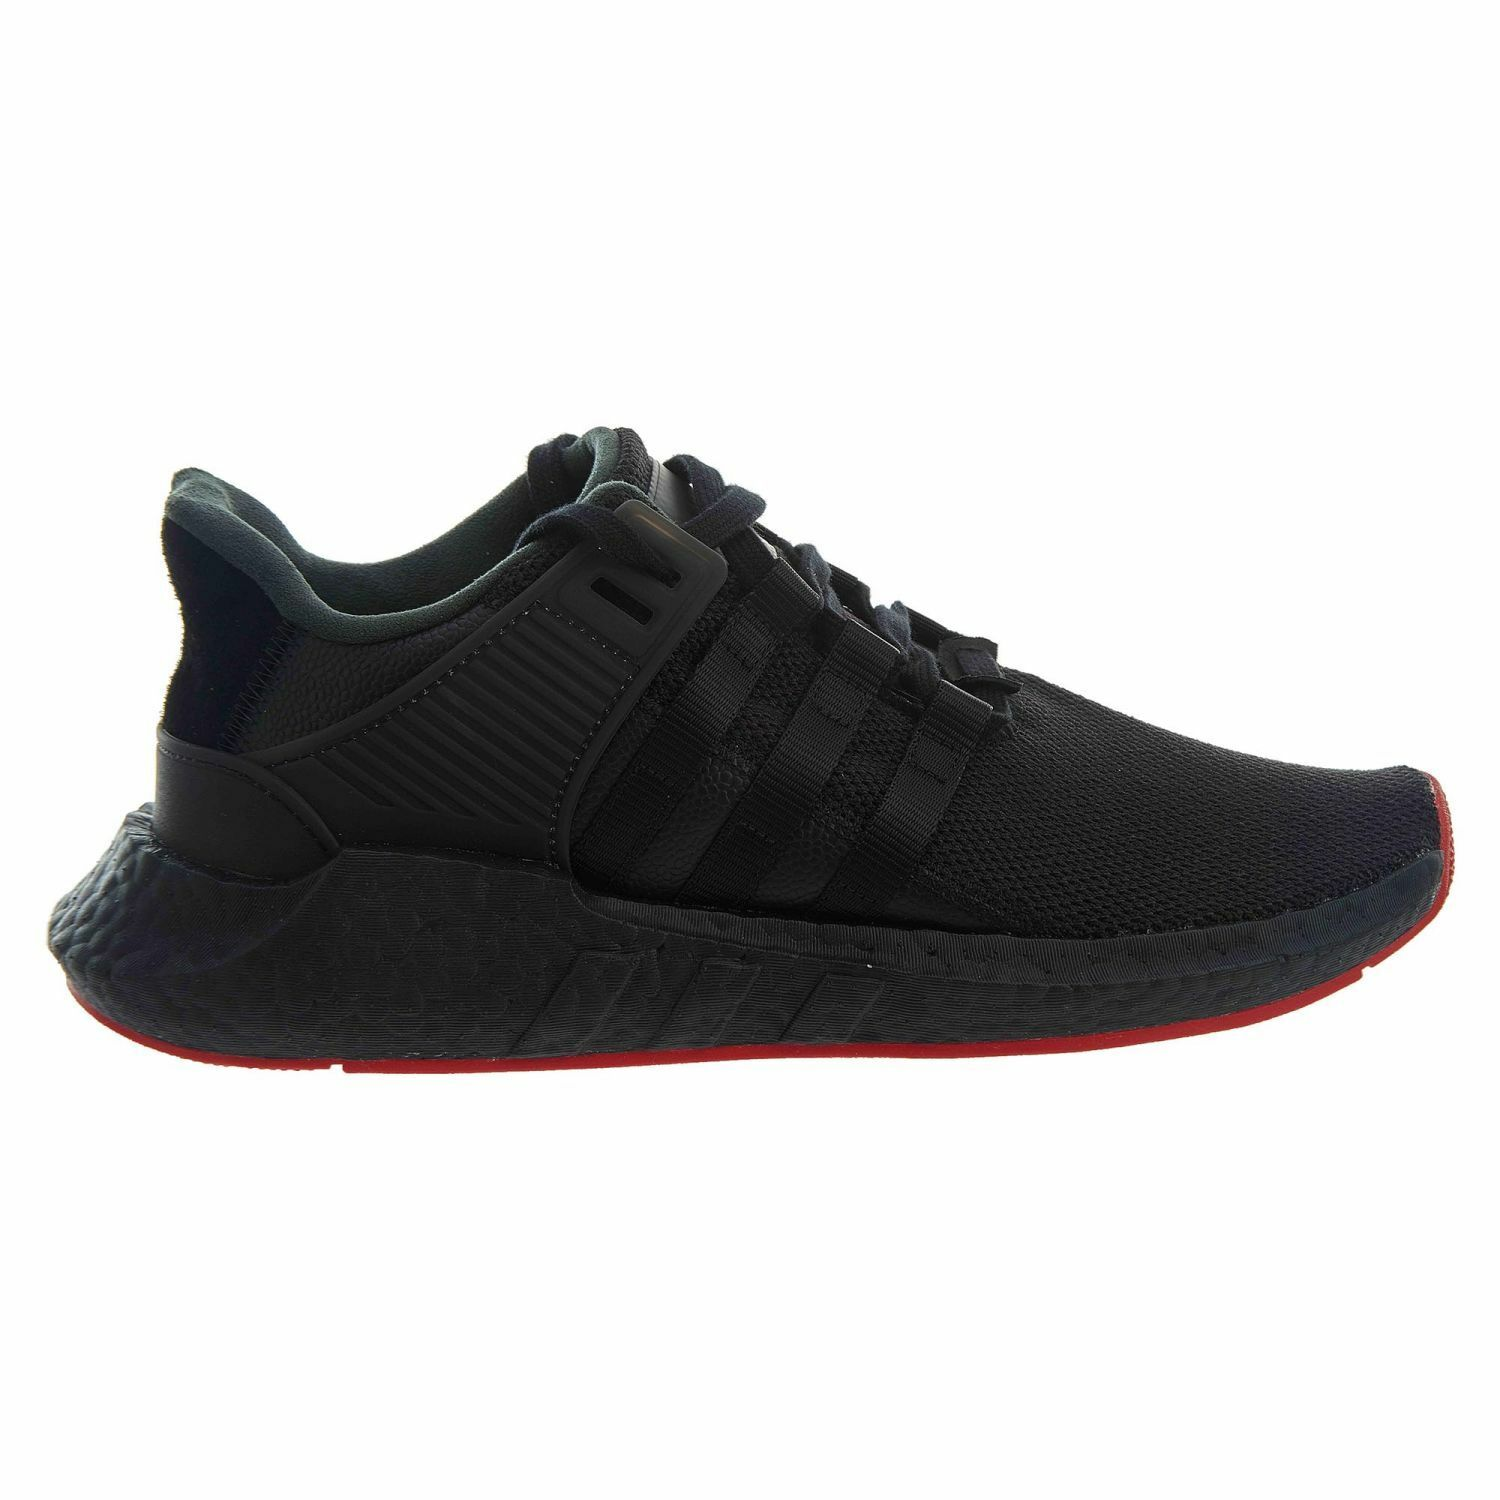 Adidas EQT Support 93 17 Red Carpet Mens CQ2394 Black Running shoes Size 12